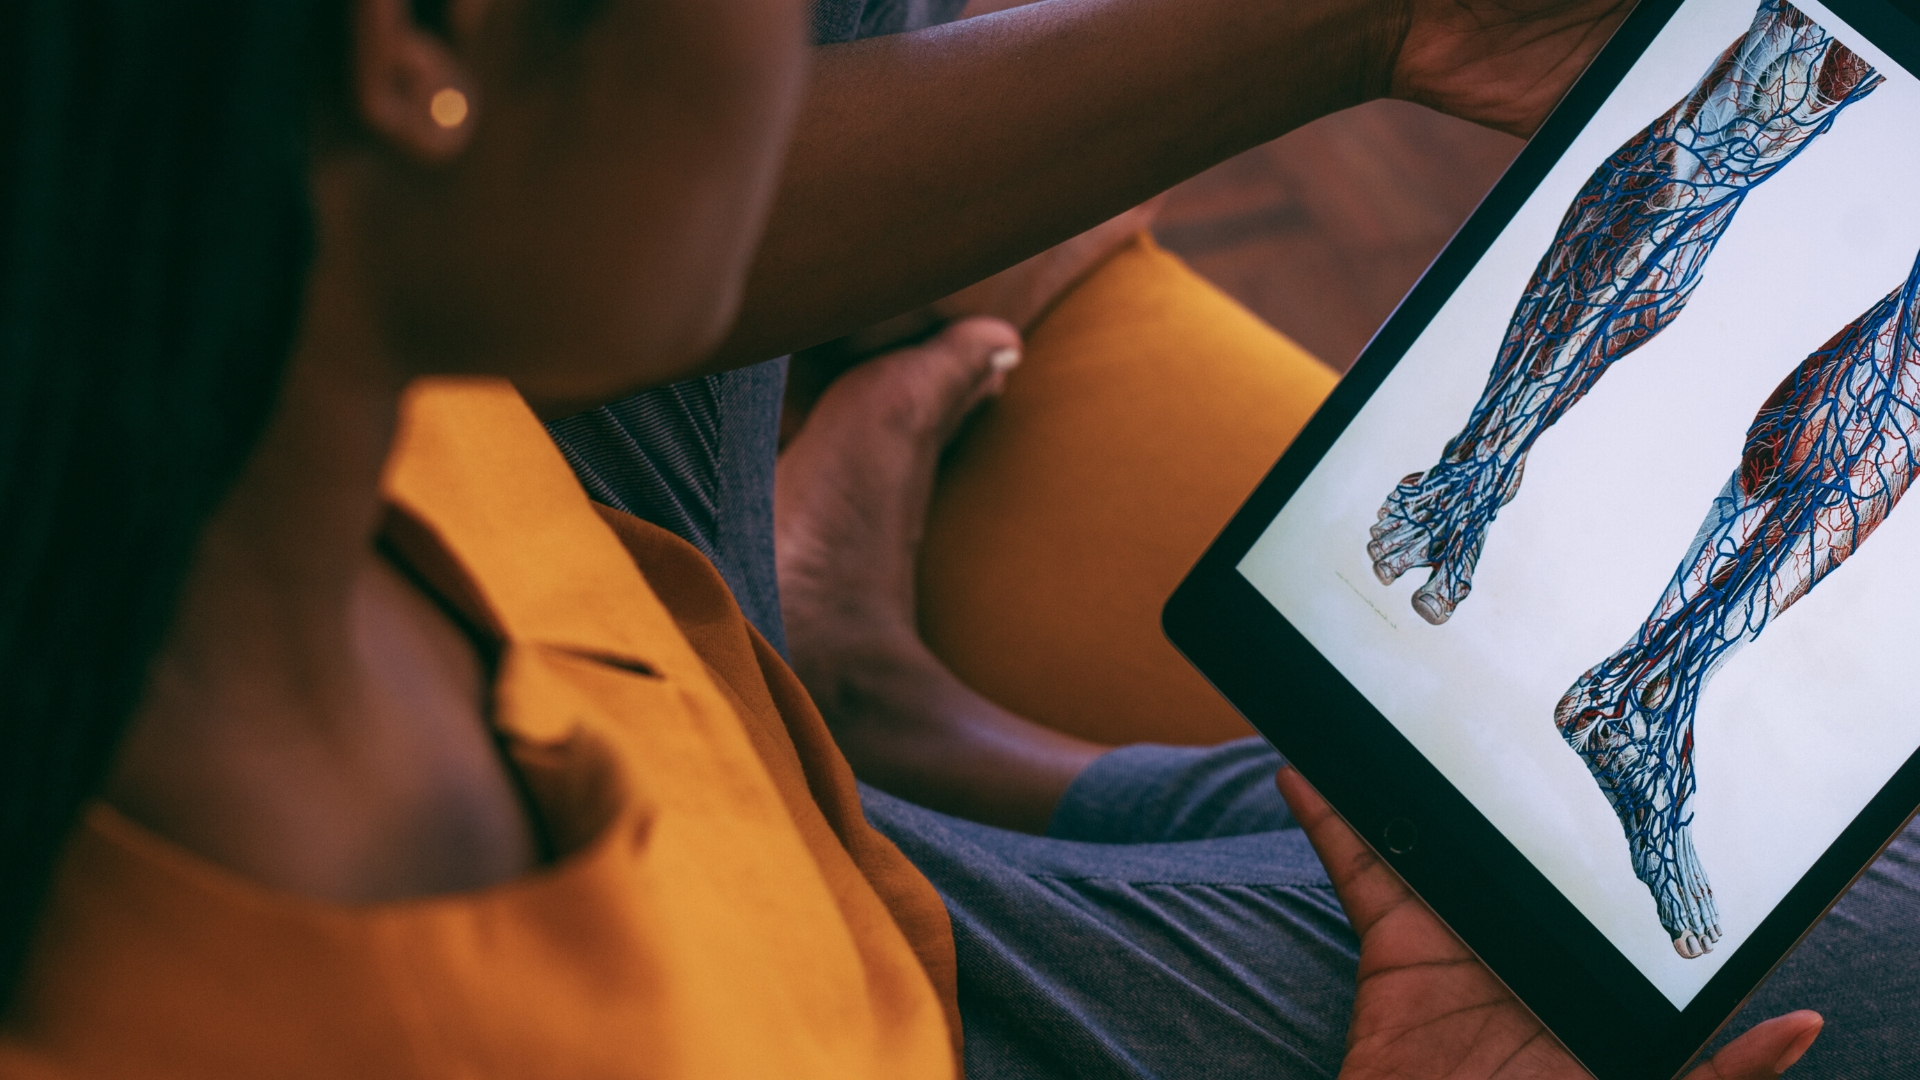 African woman on sofa looking at veins in leg on iPad